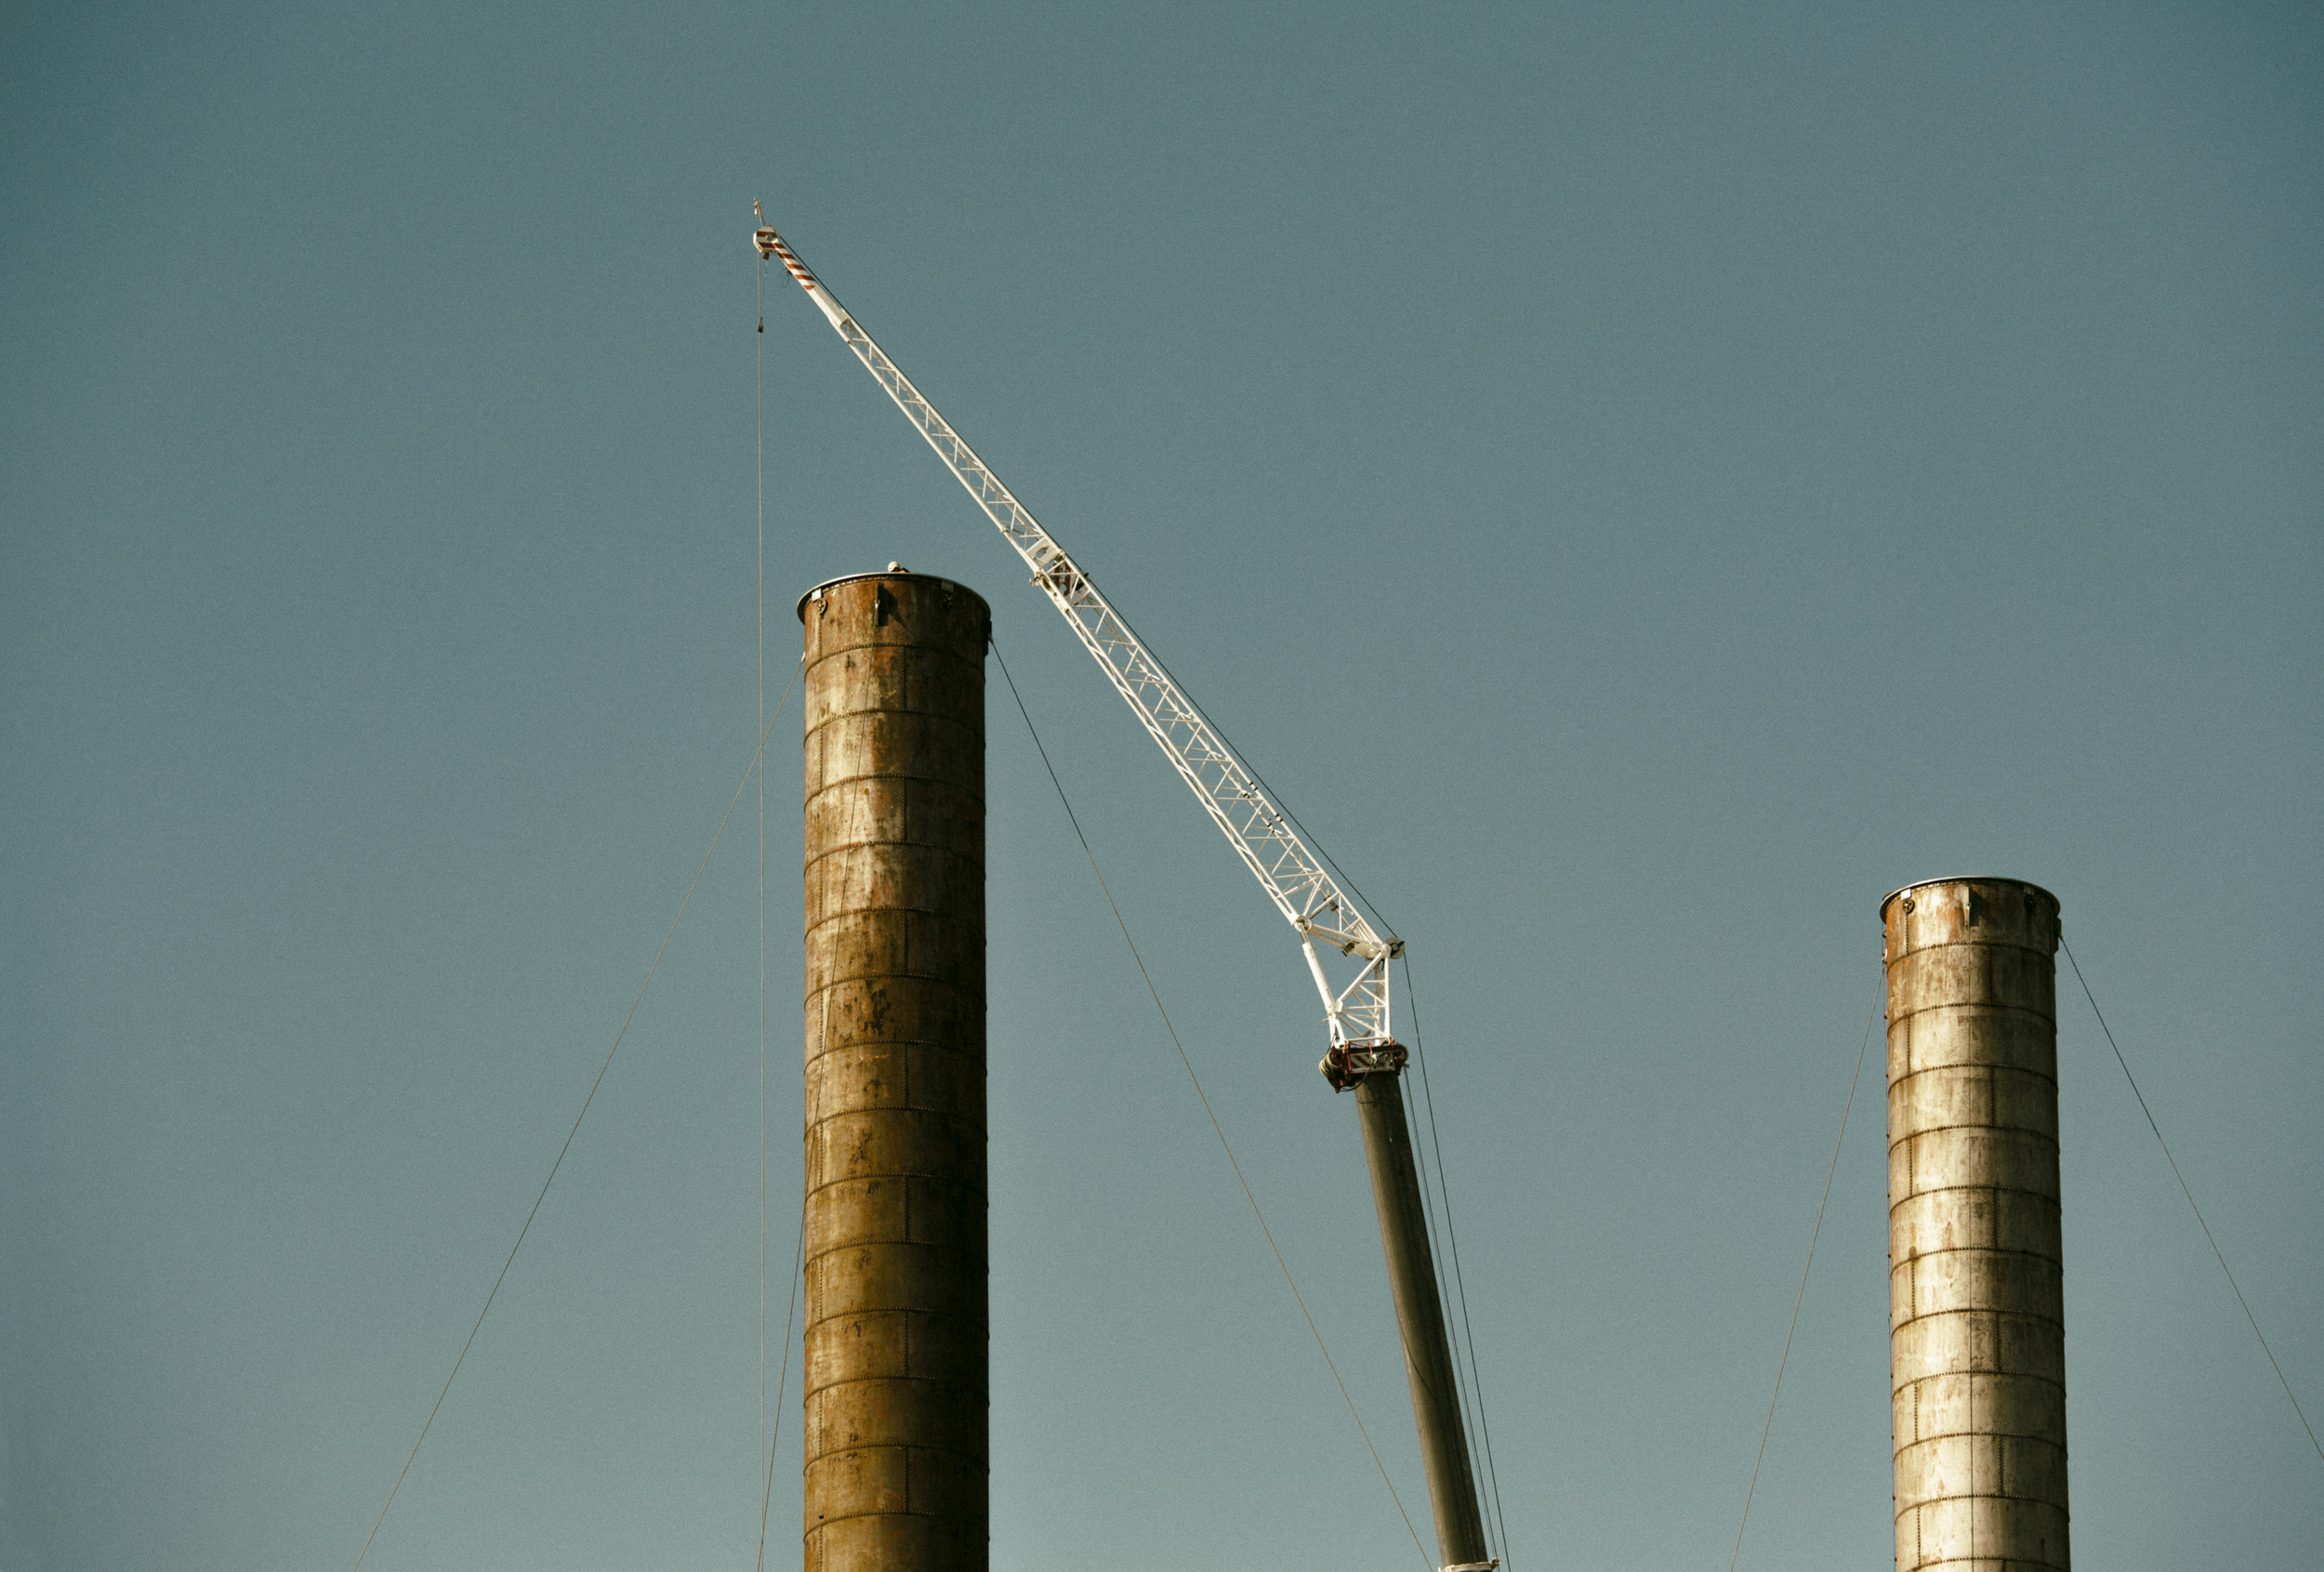 mackintosh_photography_industrial_architecture_07.jpg